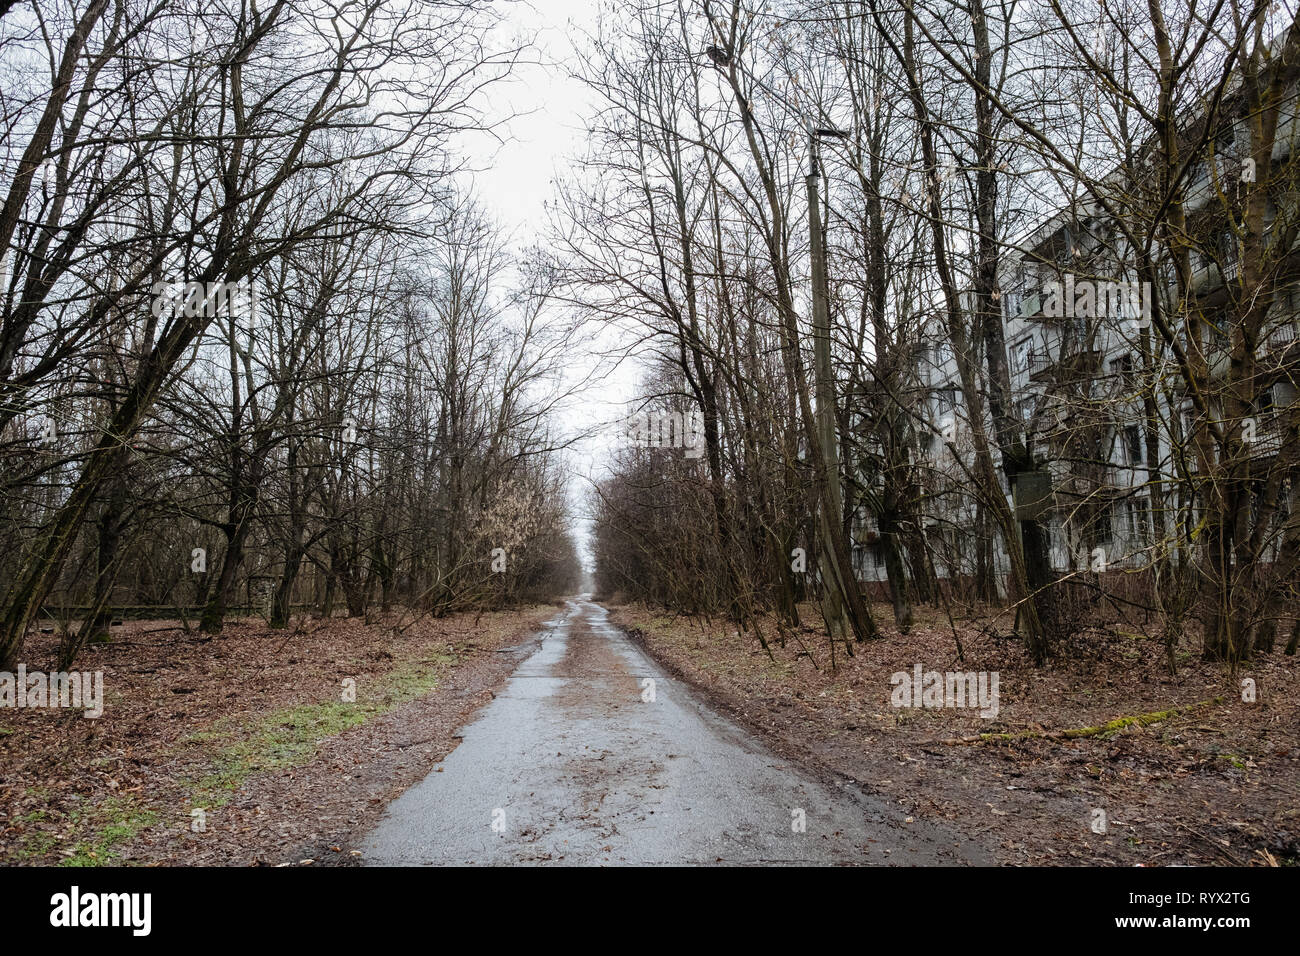 The abandoned city of Pripyat, Chernobyl nuclear power plant disaster exclusion zone, Ukraine. - Stock Image